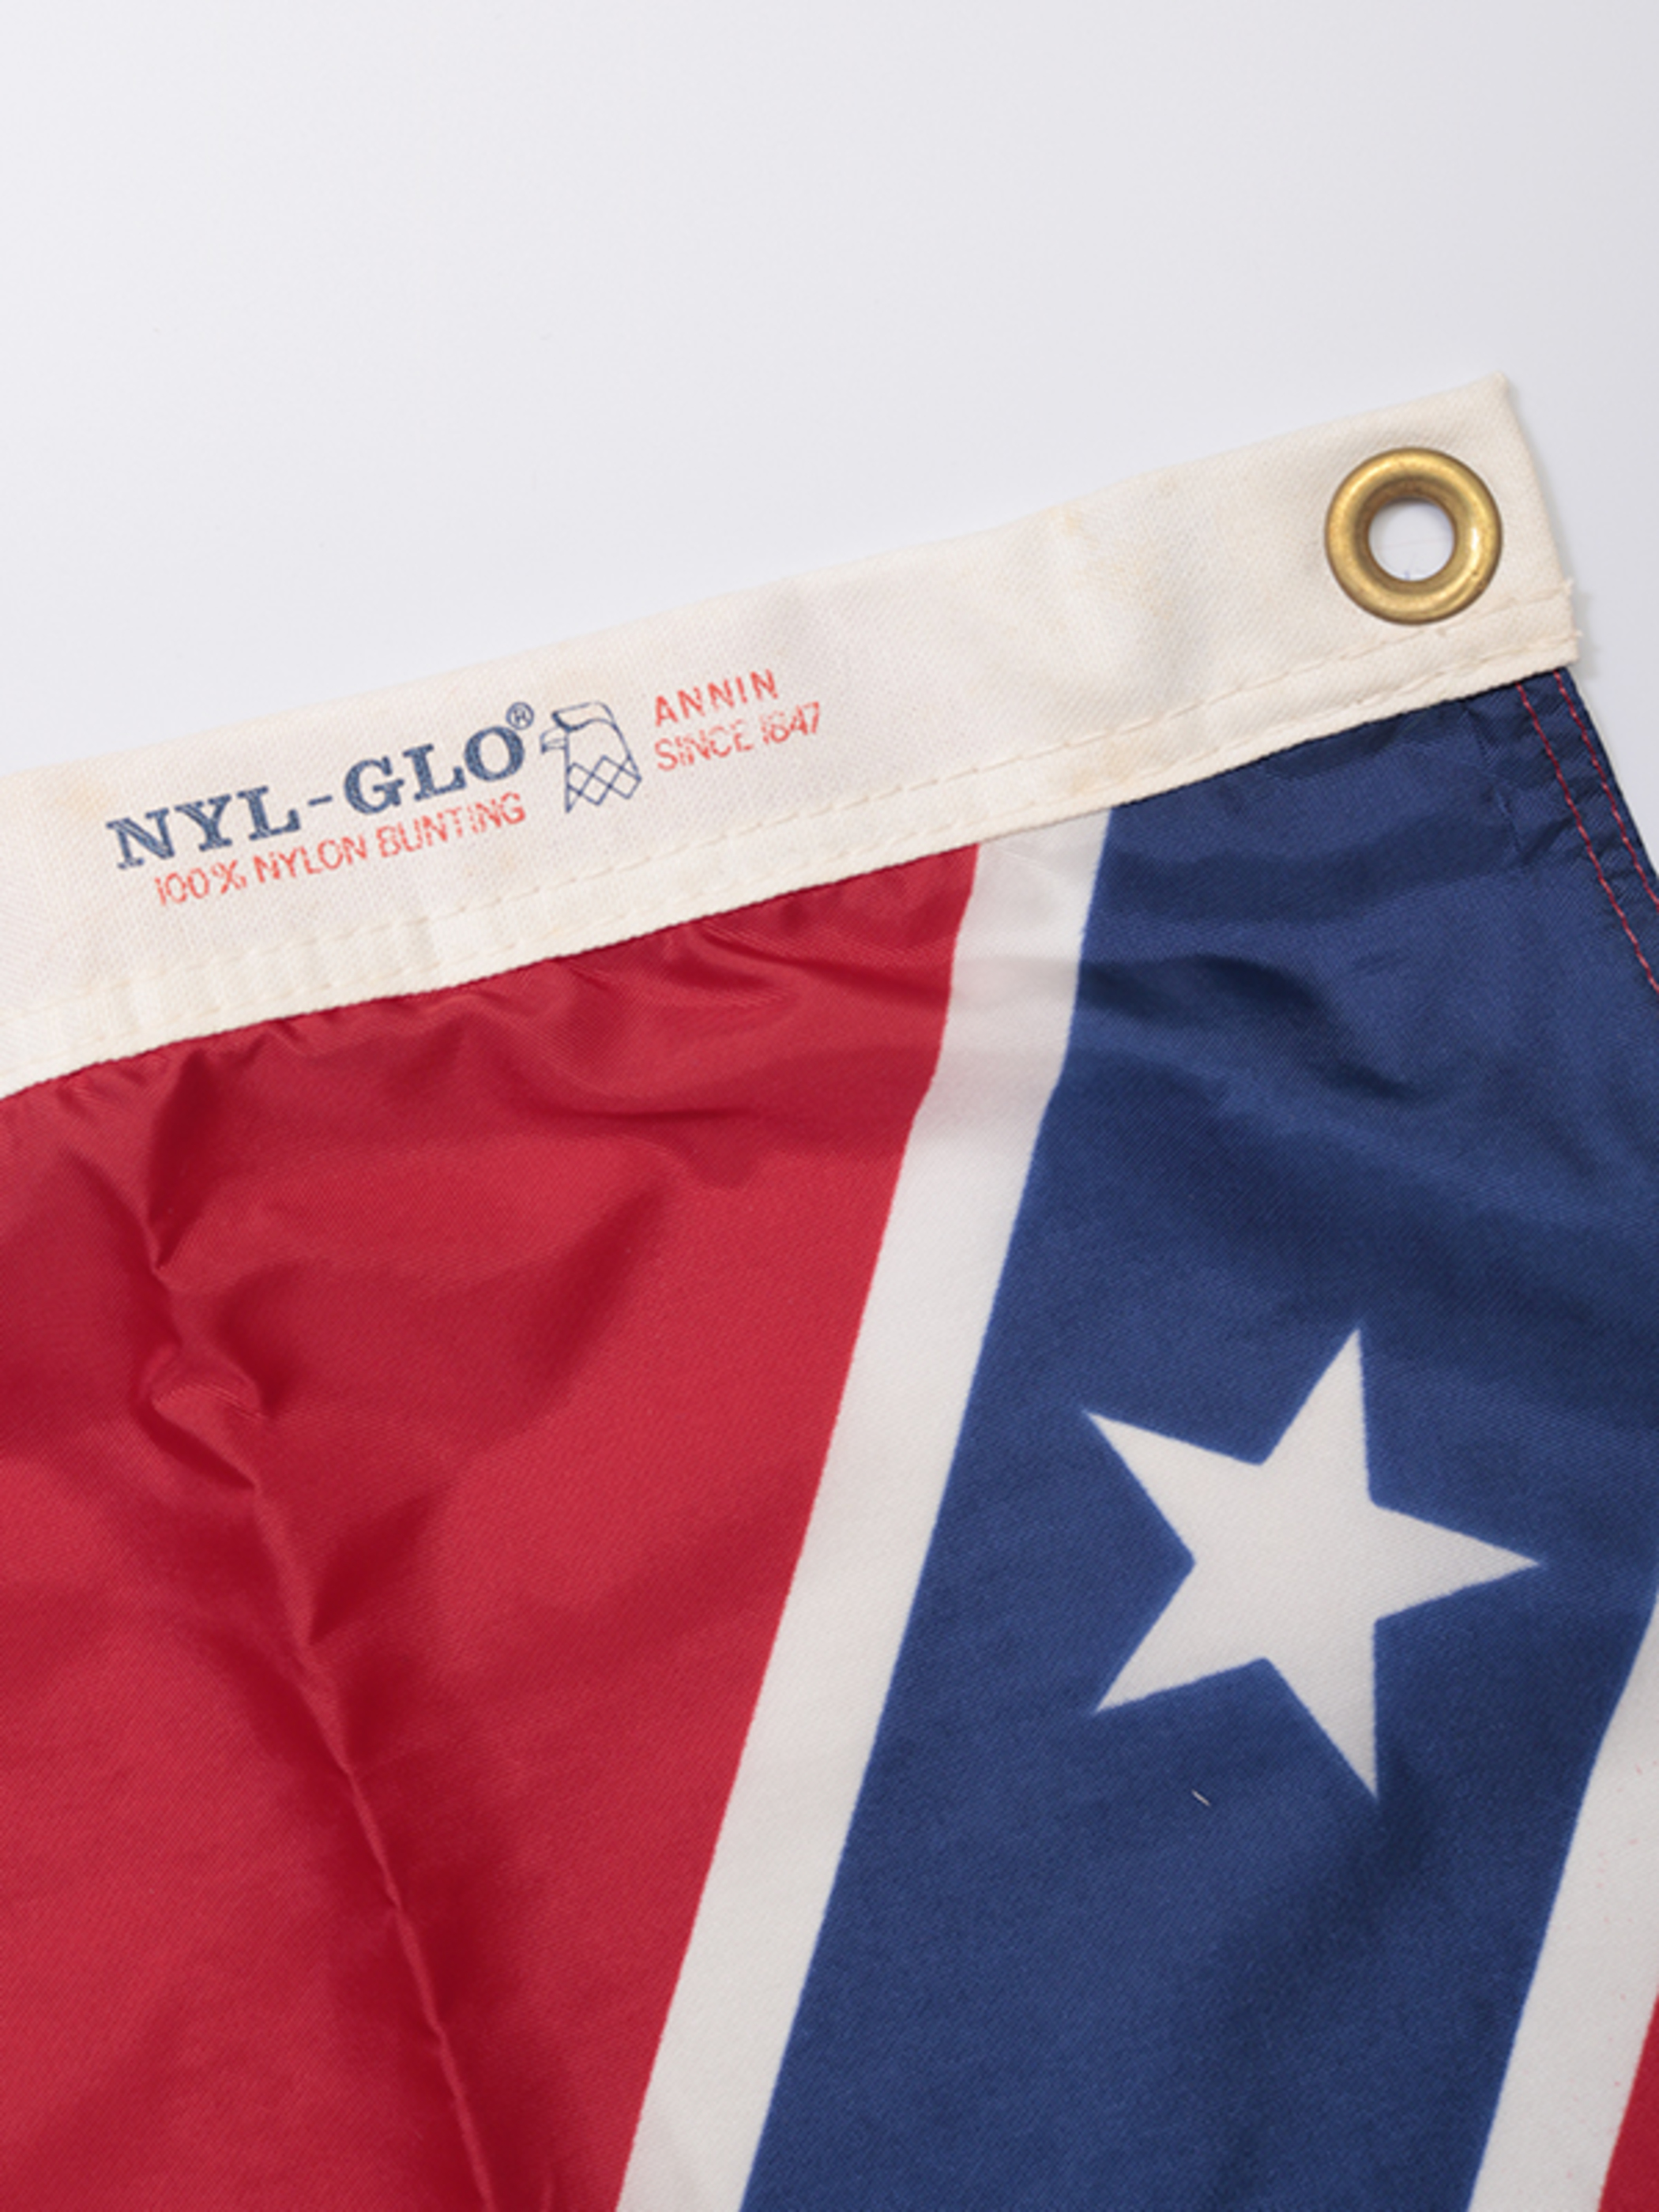 NYL-GLO Confederate Battle Flag